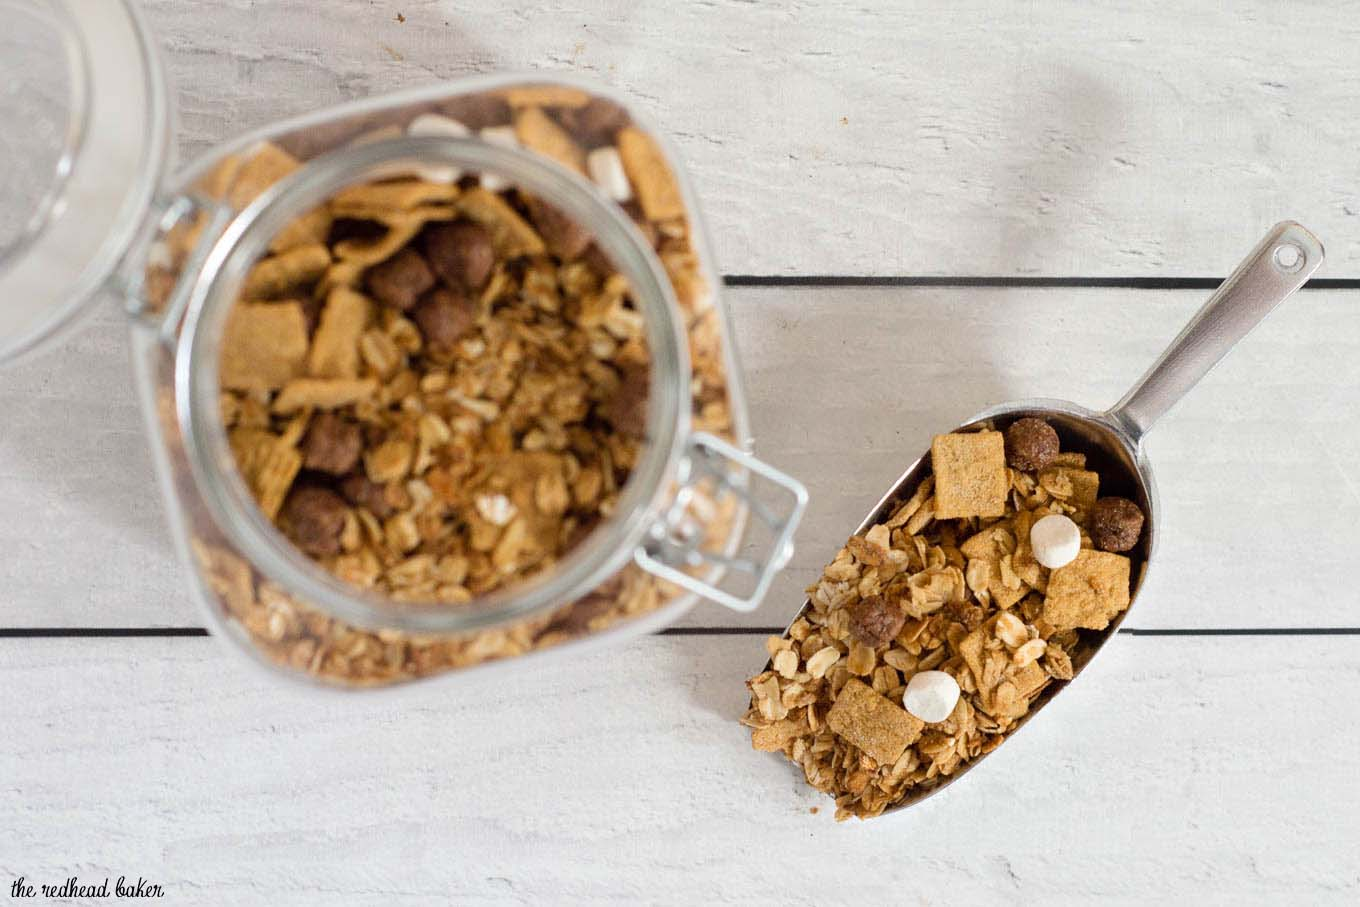 Back-to-school means busy days. Make a batch of this S'mores Granola made with HONEY MAID® S'mores so you always have a snack at the ready. #StockUpWithPost #CerealAnytime #sponsored